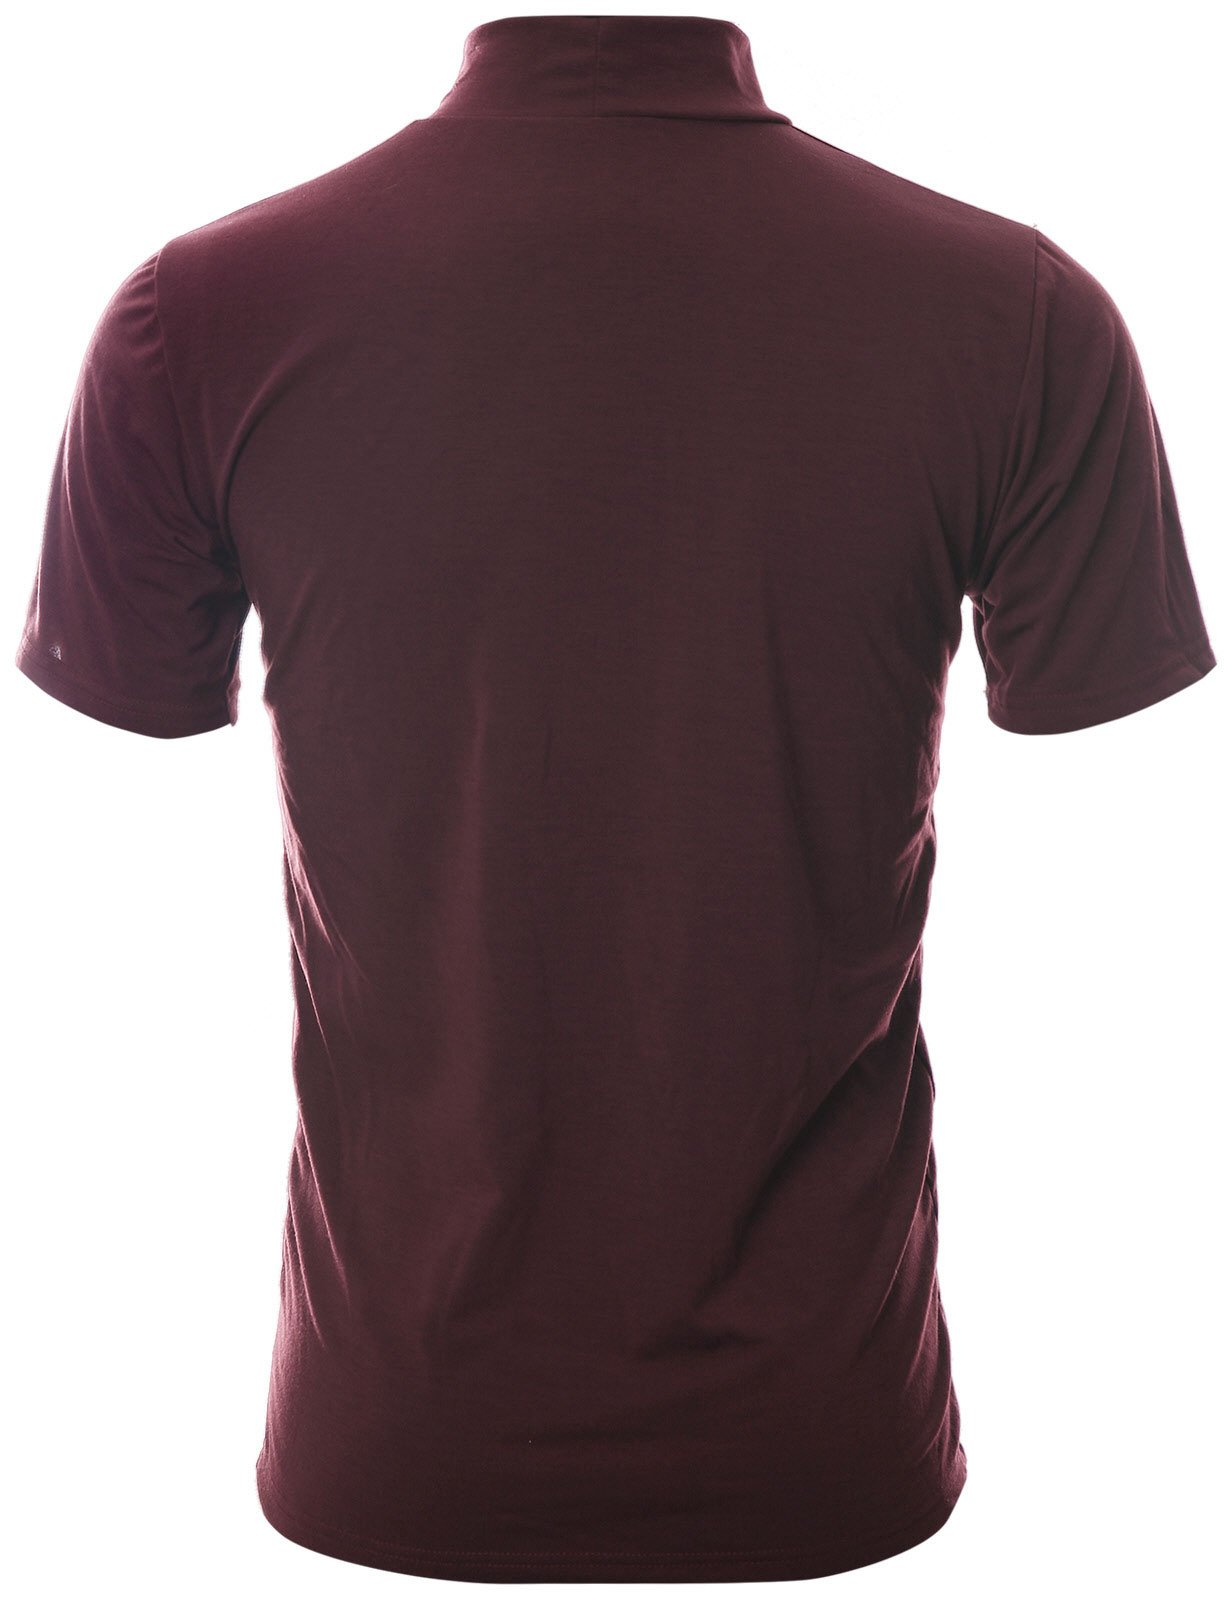 Ohoo Mens Slim Fit Soft Cotton Short Sleeve Pullover Lightweight Turtleneck Warm Inside /DCT101-BURGUNDY-2XL by Ohoo (Image #3)